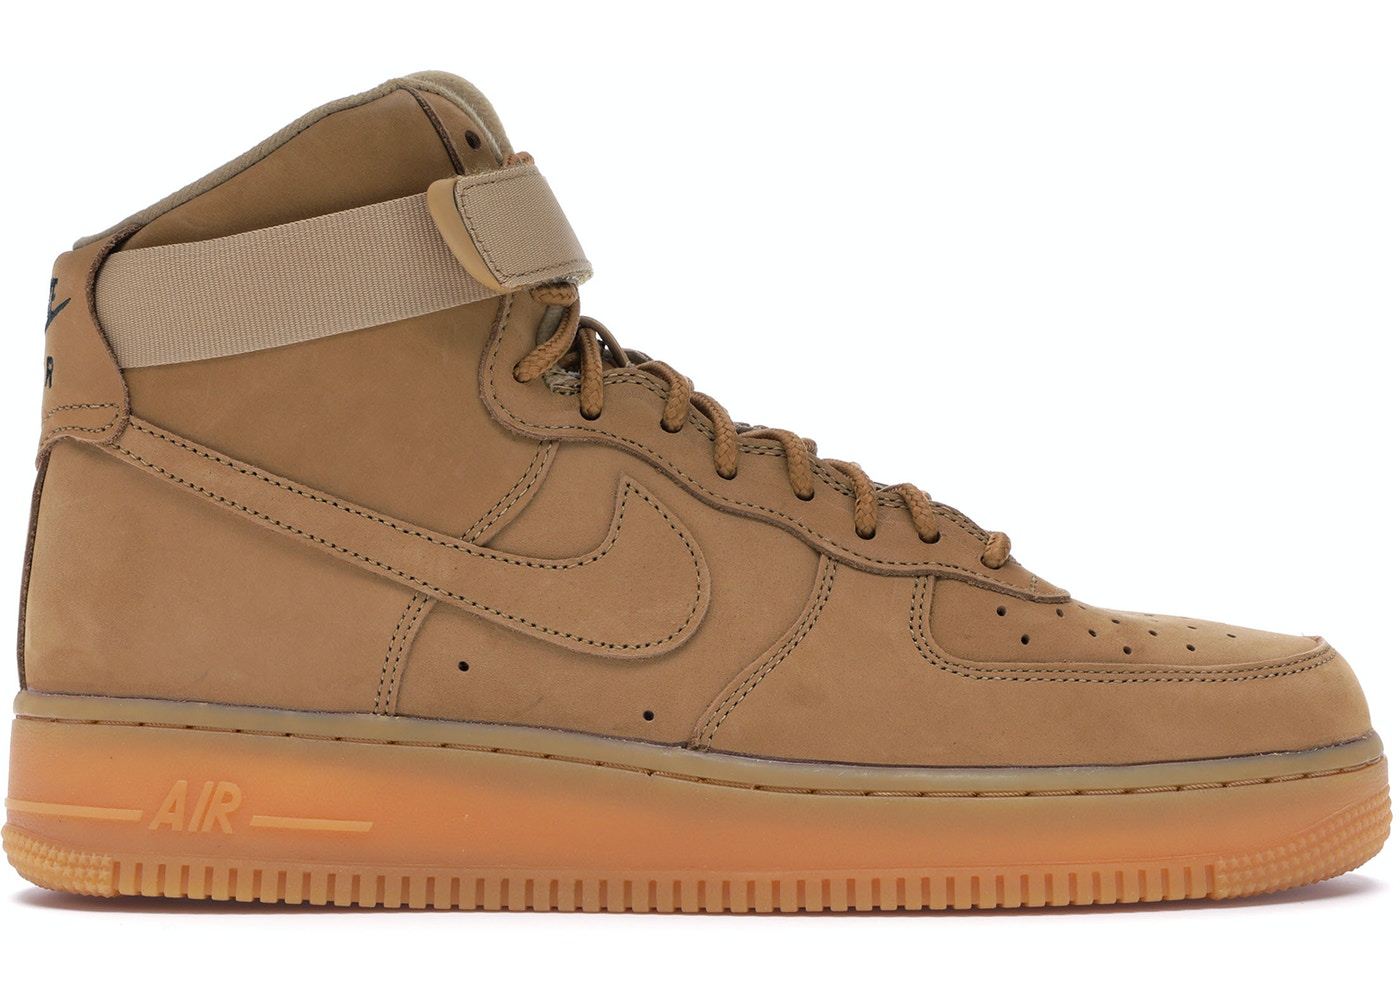 new style 9112c c2619 Air Force 1 High Flax (2017) - 882096-200